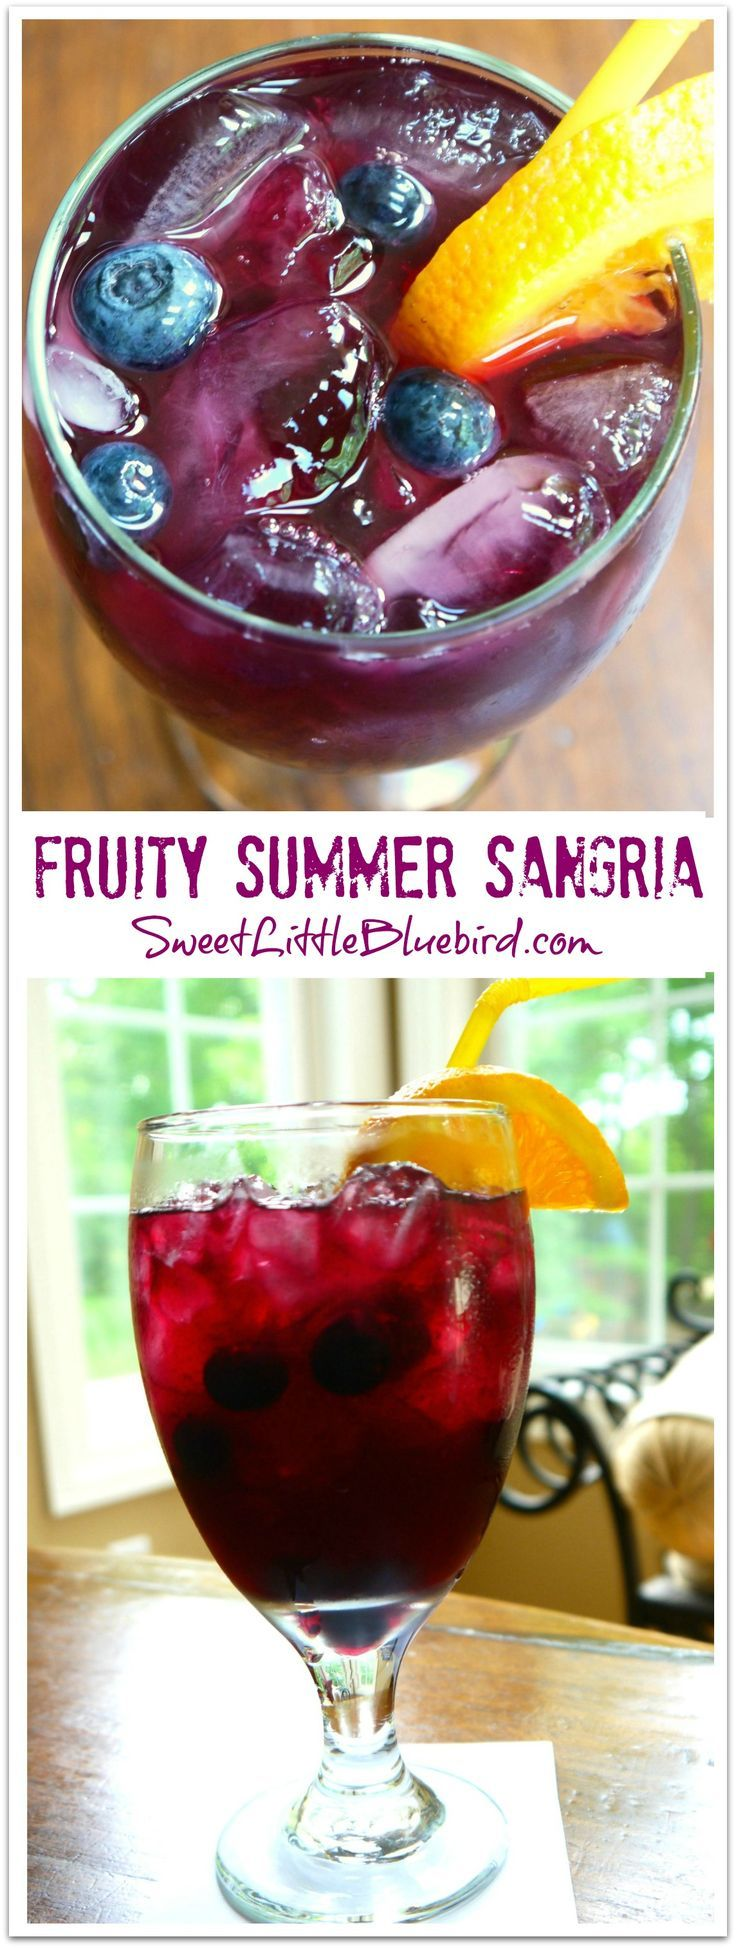 FRUITY SUMMER SANGRIA -  Summer in a glass!  Perfect for outdoor parties and get-togethers, always a hit!      SweetLittleBluebird.com